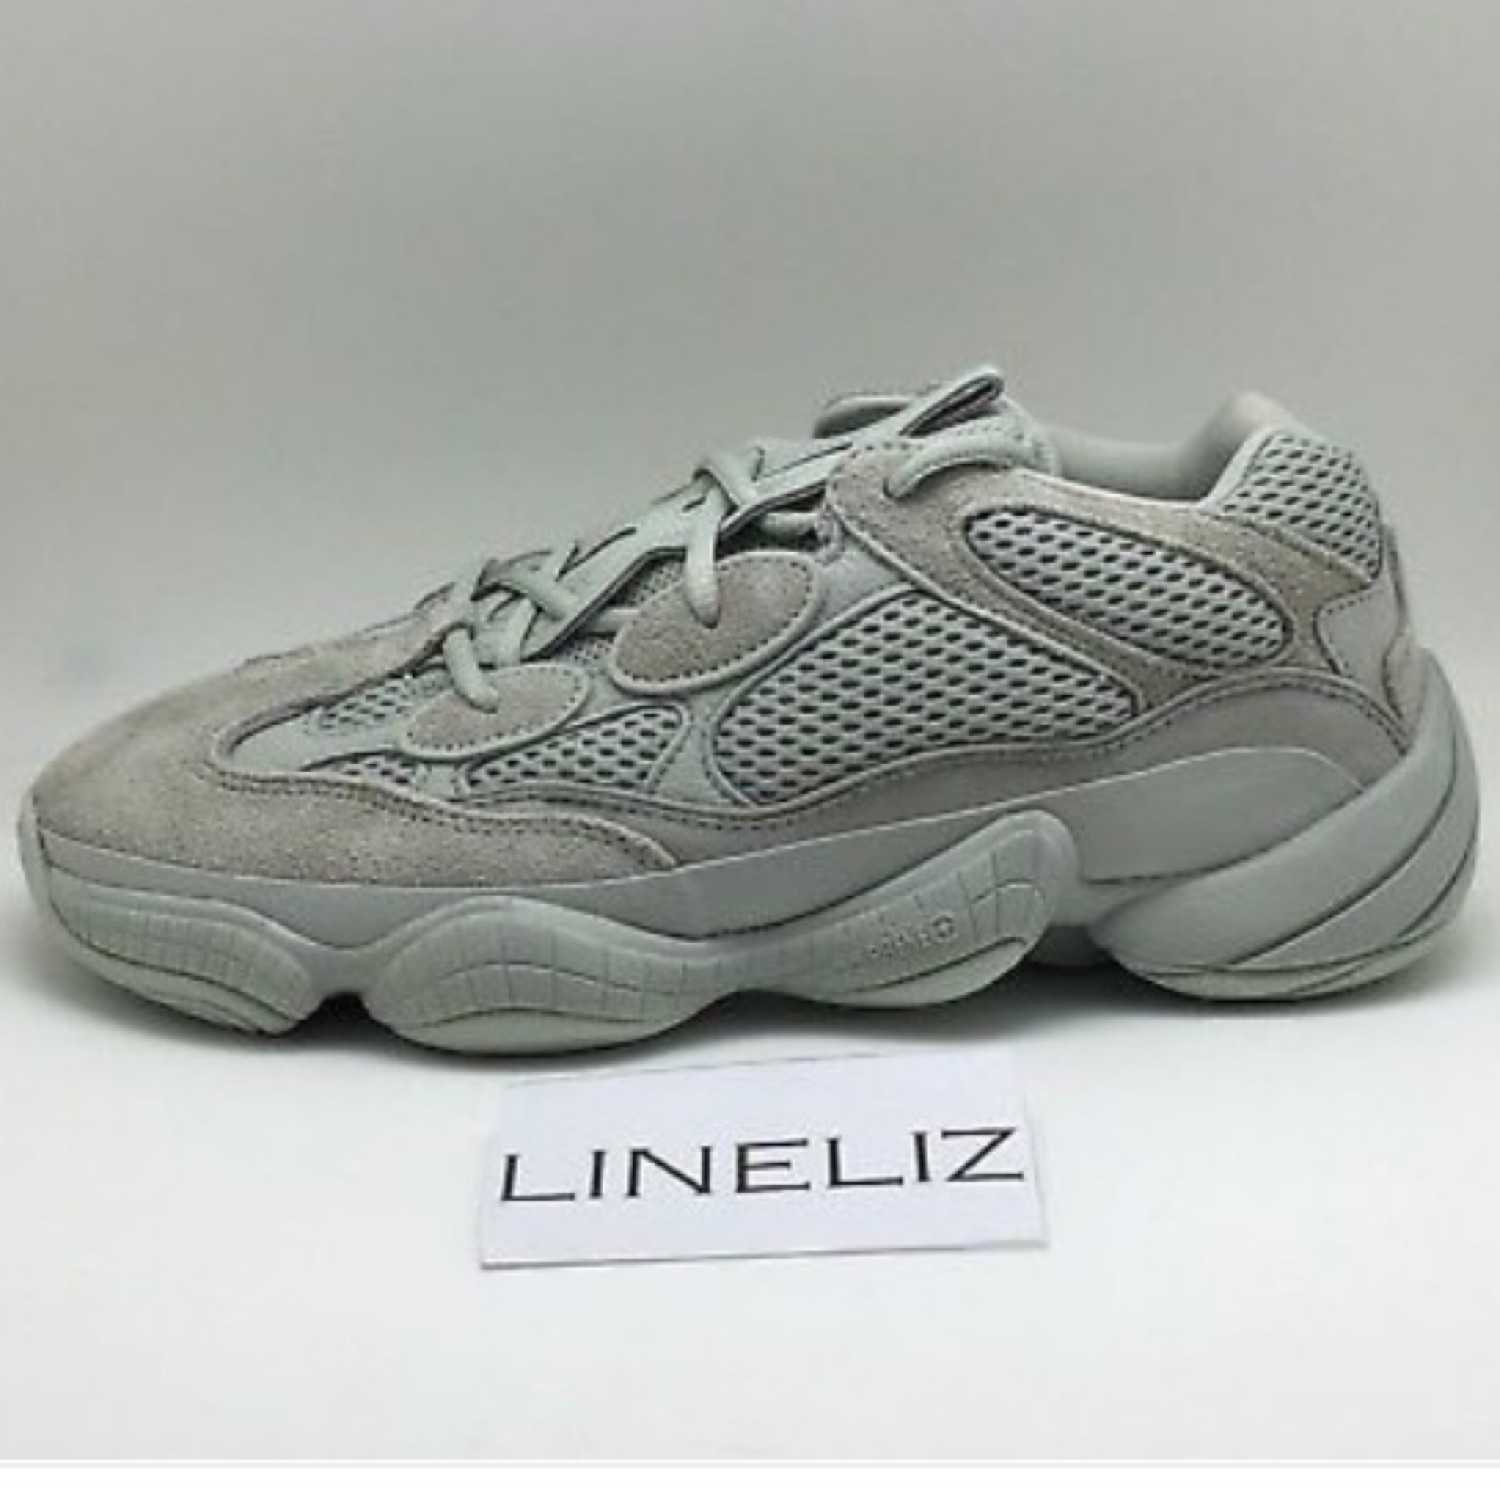 separation shoes 52f80 05dda Adidas Yeezy 500 Desert Rat Salt